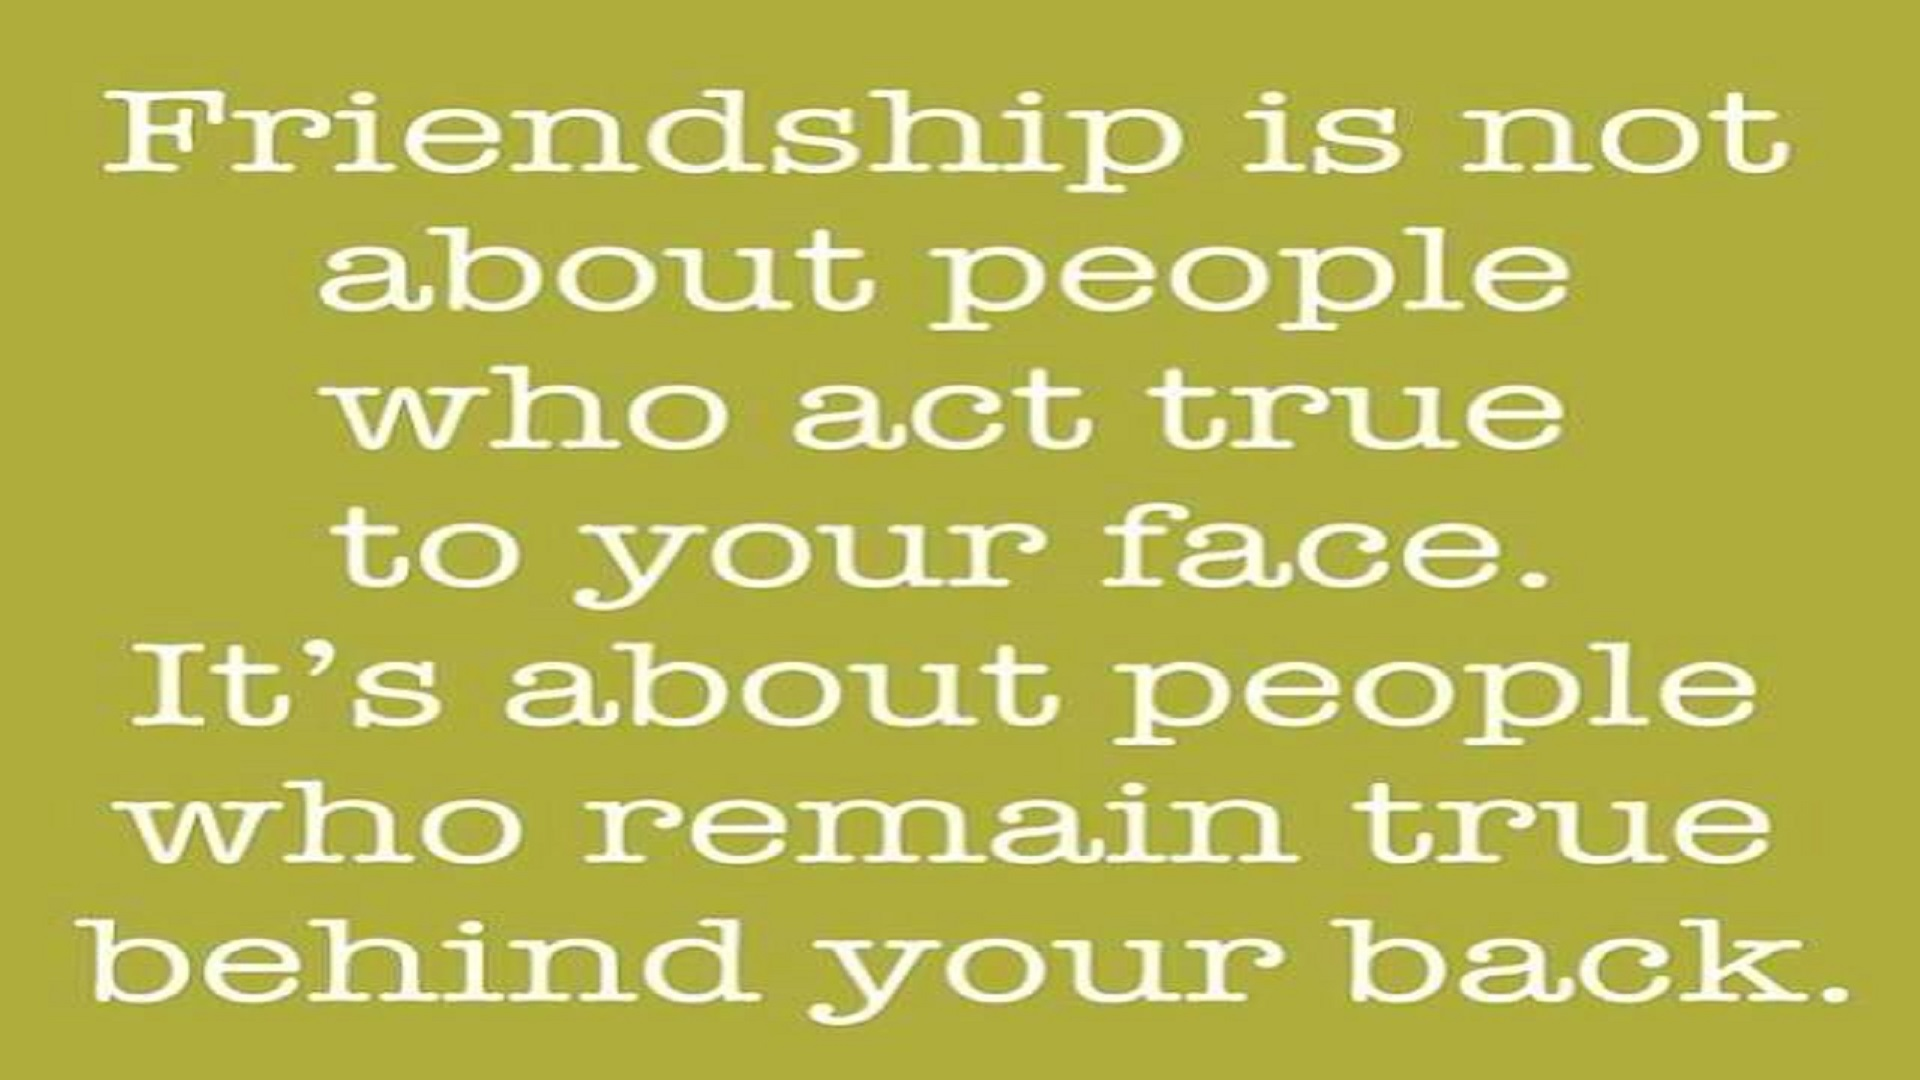 Funny Friendship Quotes Bestandfunnyfriendshipquotefreehdwallpapers  Hd Wallpaper